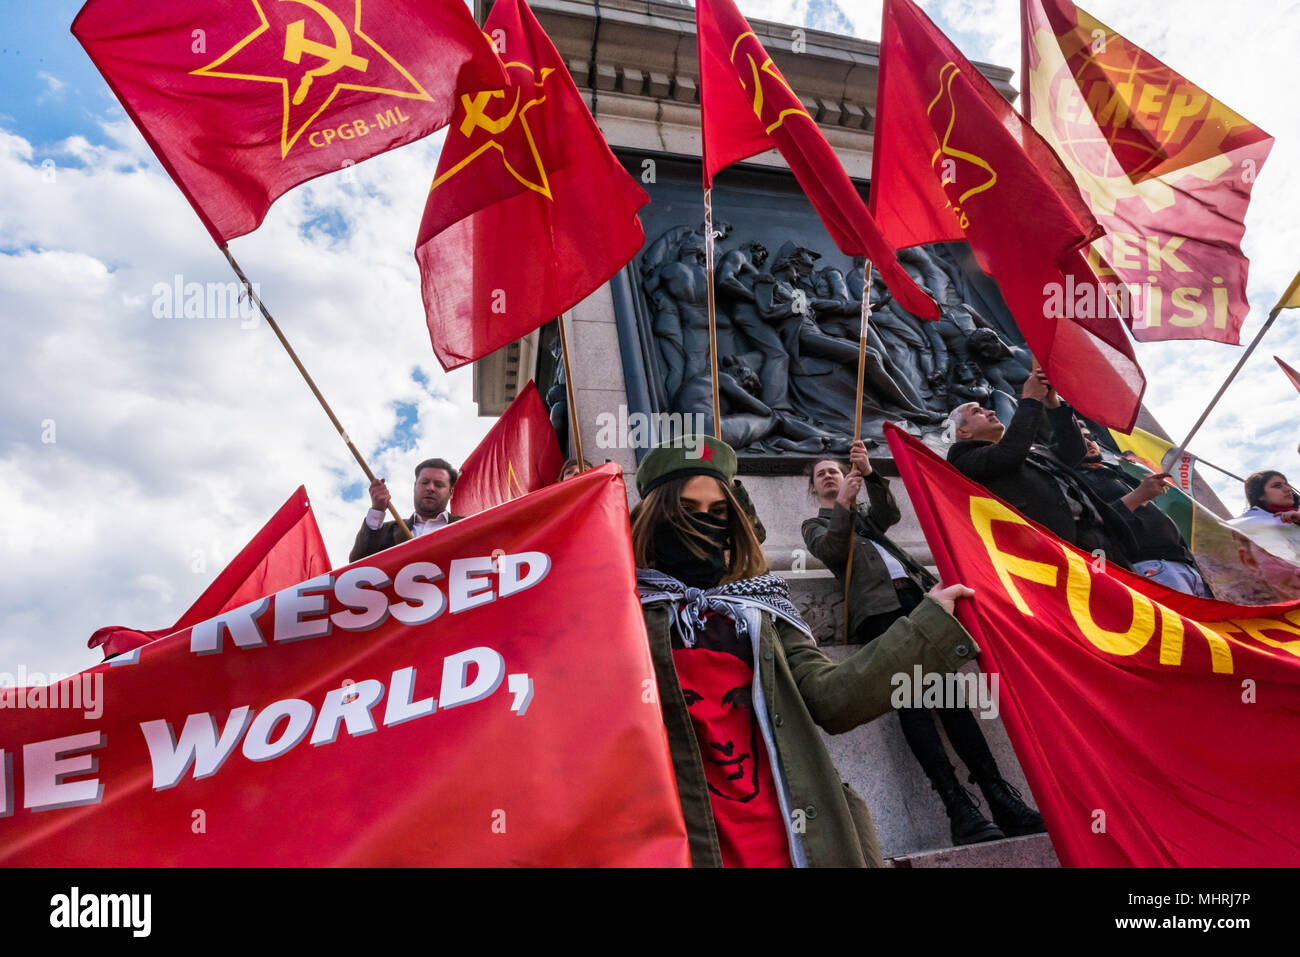 May 1, 2018 - London, UK. 1st May 2018. CPGB-ML, (Communist Party GB ...